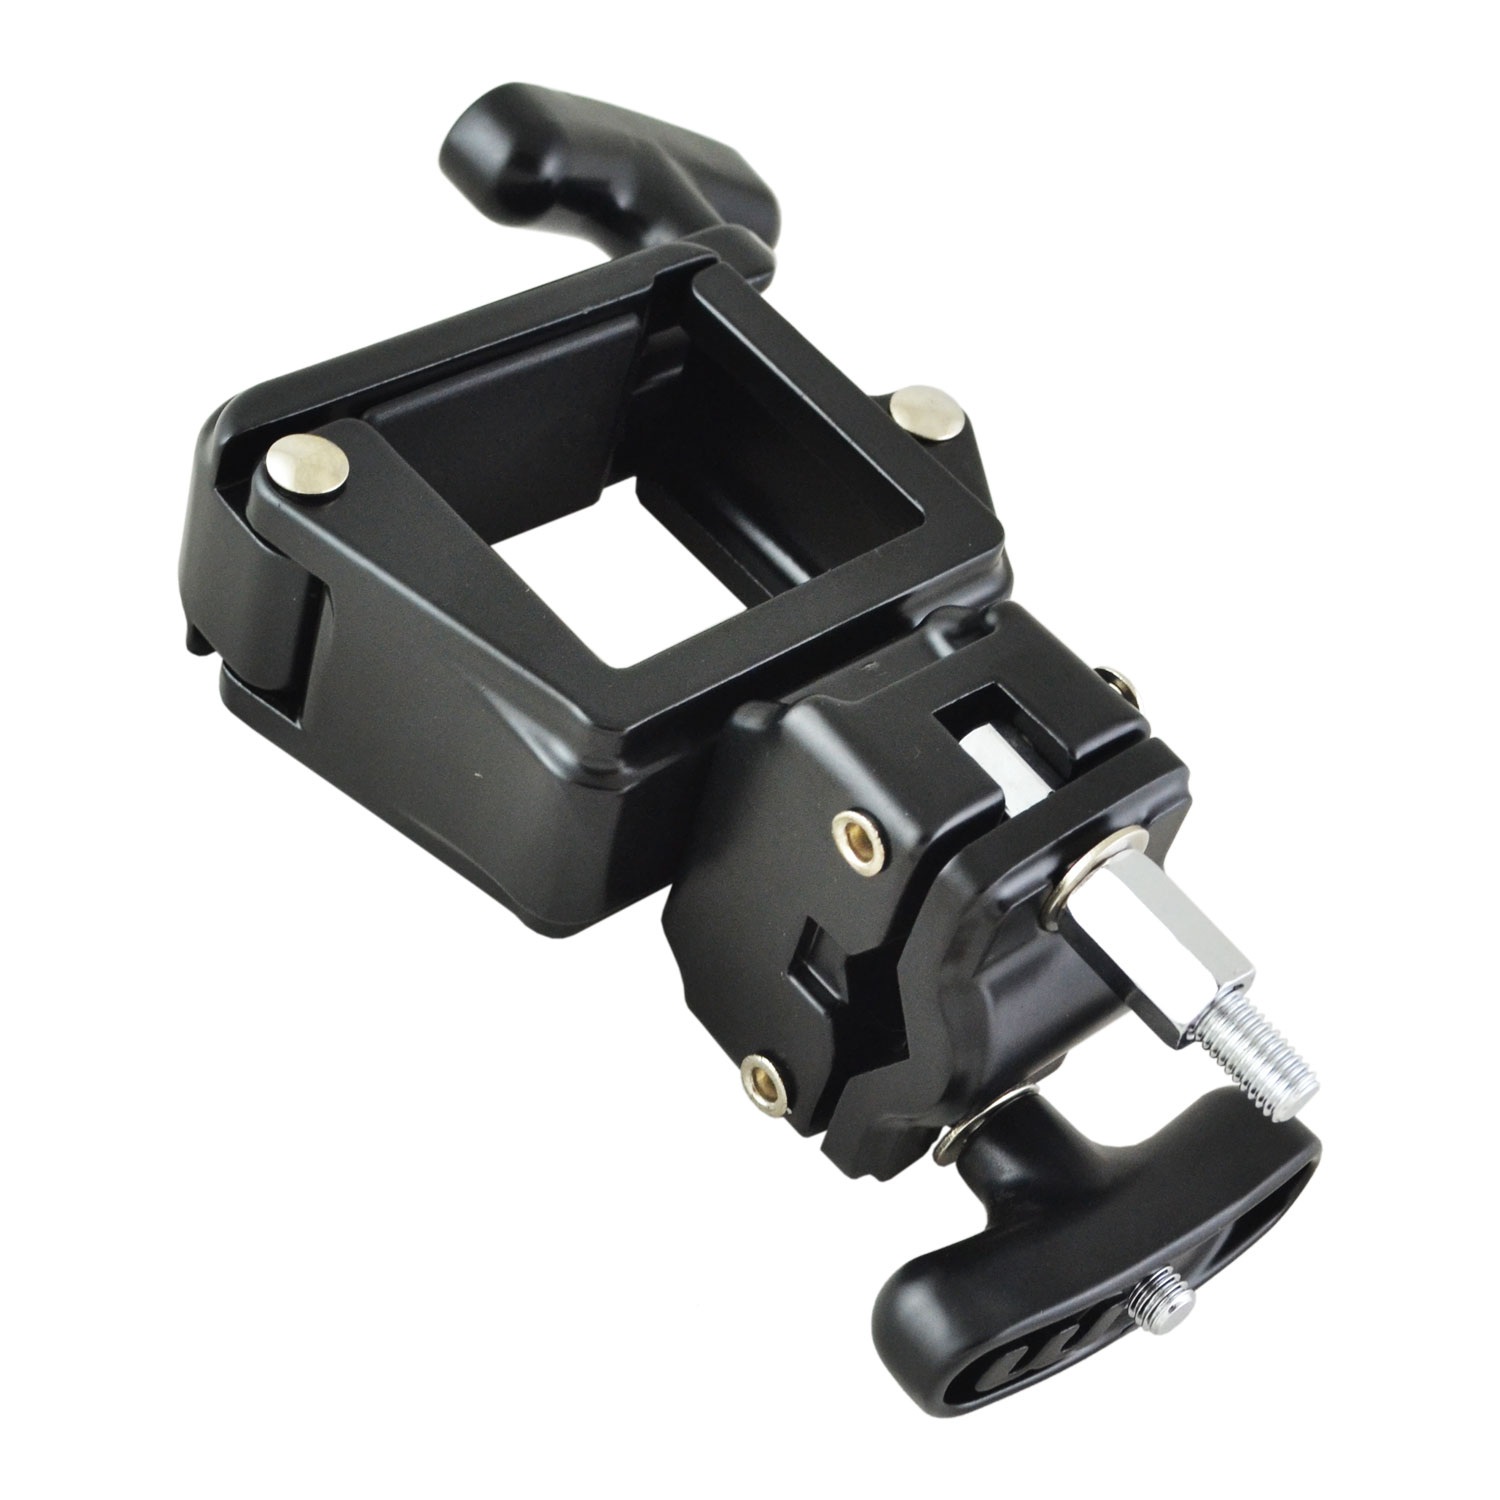 Musser Accessory Clamp for Ultimate Field Frames